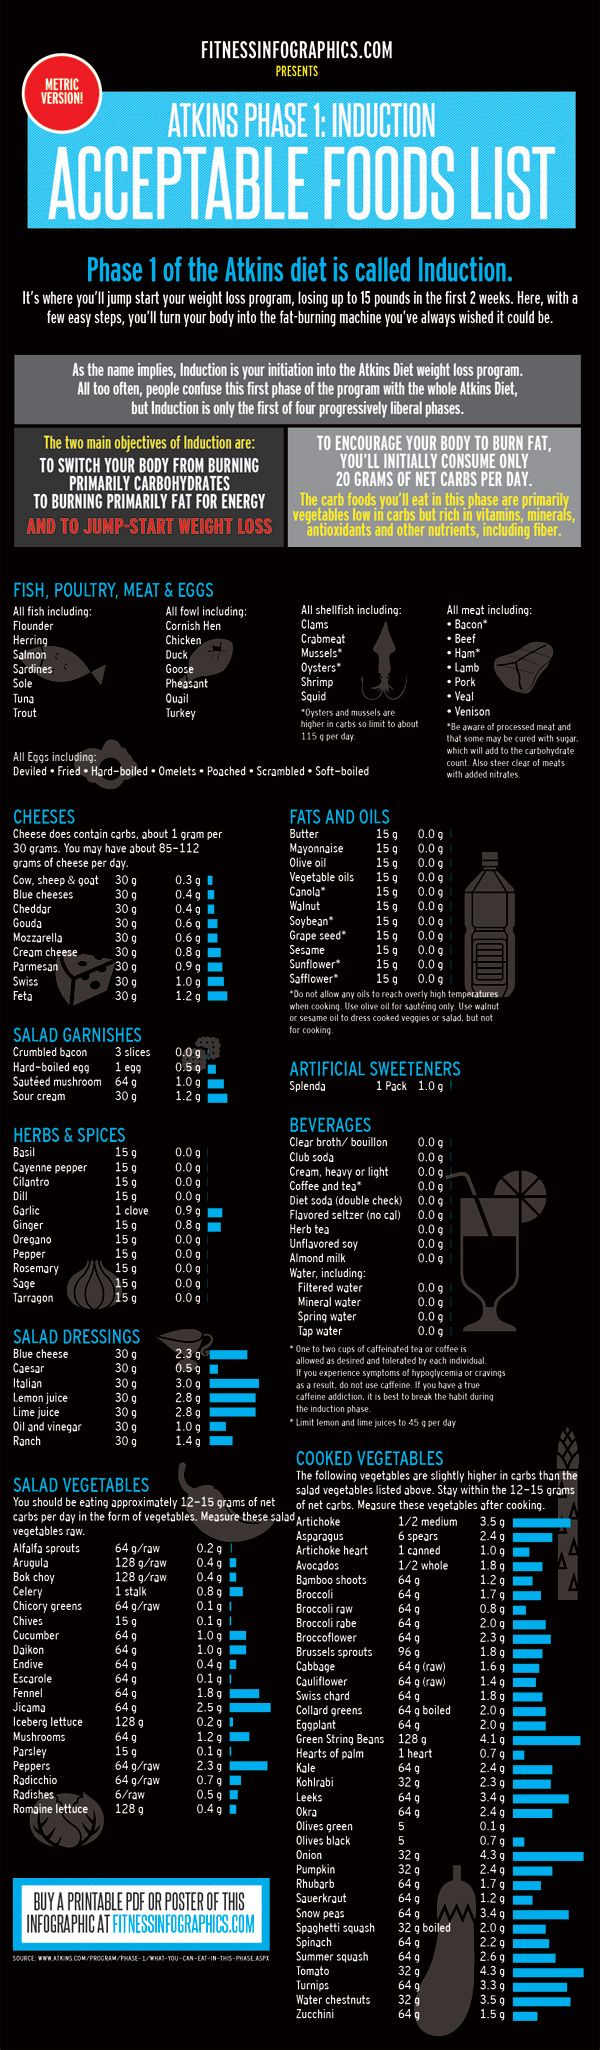 Atkins Acceptable Foods METRIC VERSION - Fitness Infographics!